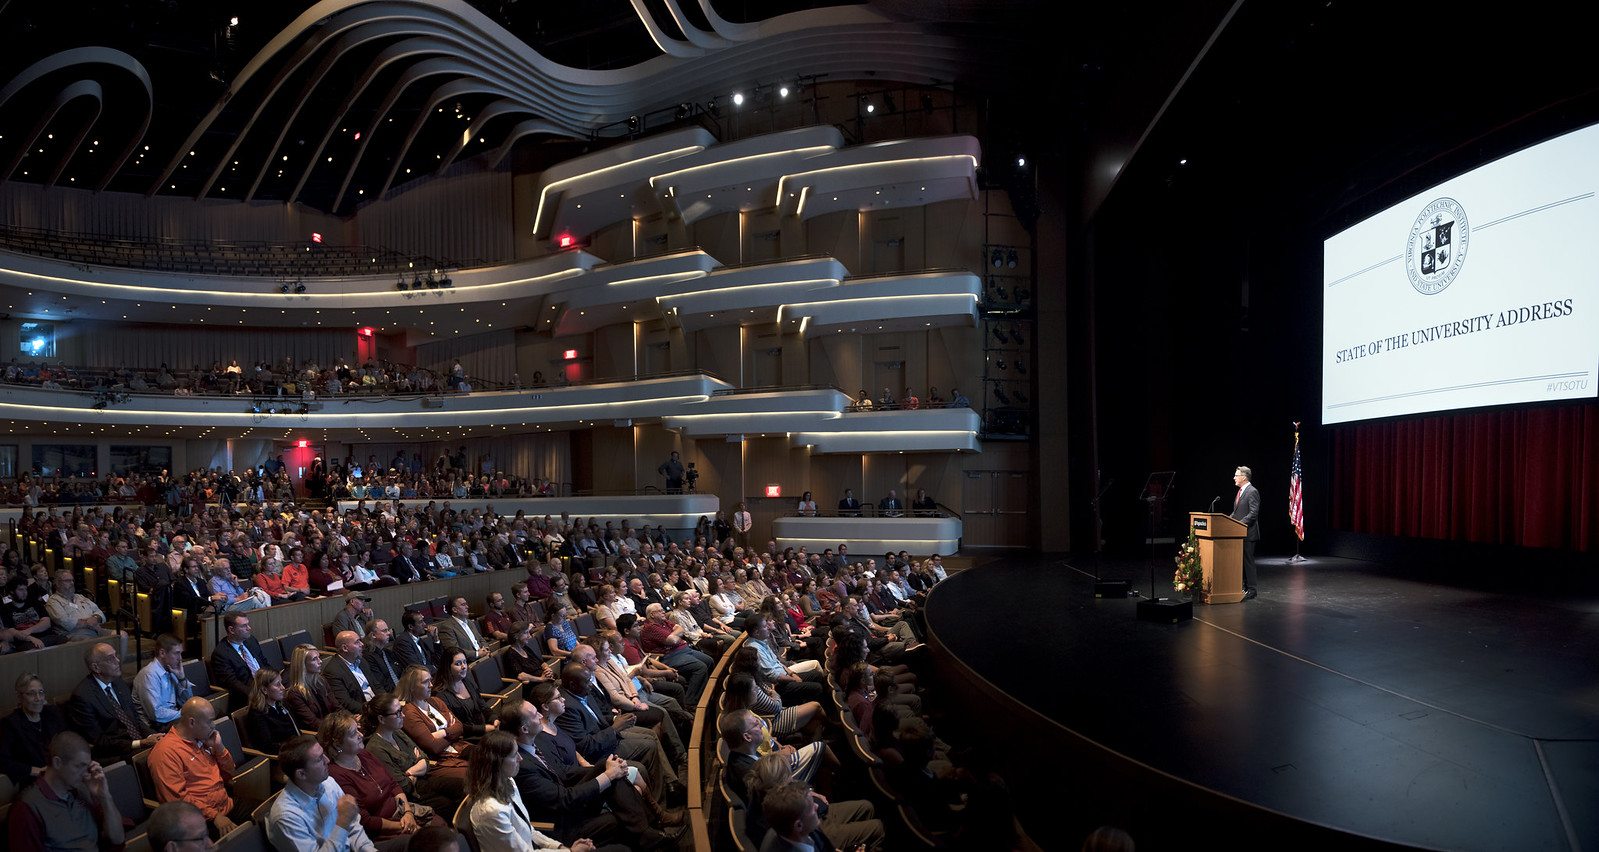 Virginia Tech President Timothy Sands speaks to the crowd in the Anne and Ellen Fife Theatre in the Moss Arts Center on Sept. 30, 2016. Photo courtesy of Virginia Tech.